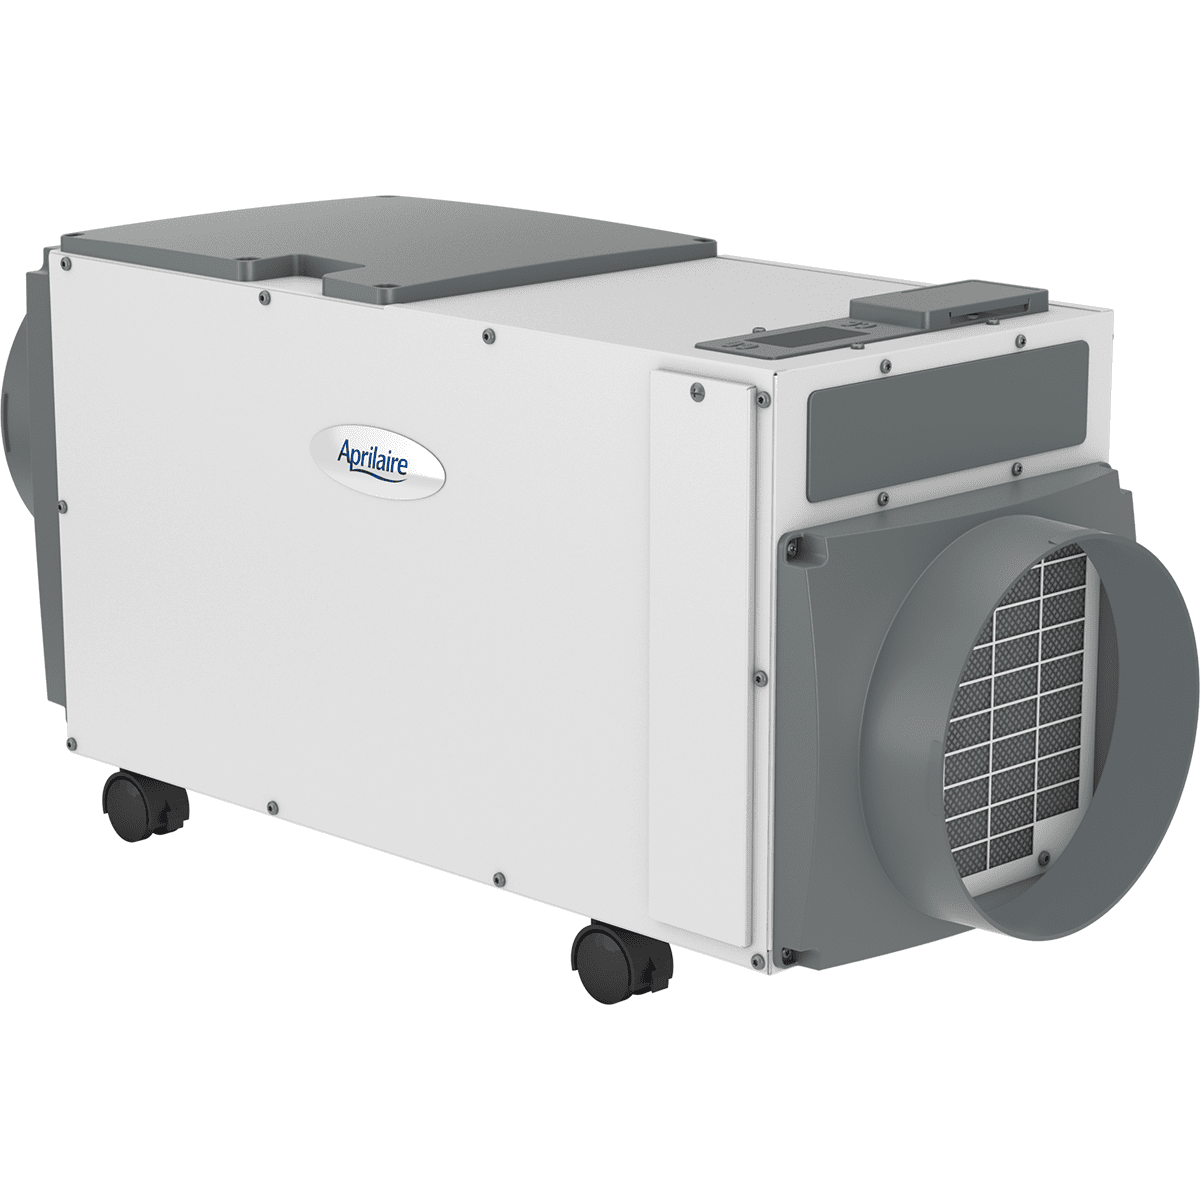 Image of Aprilaire 1852 95-pint Whole House Dehumidifier